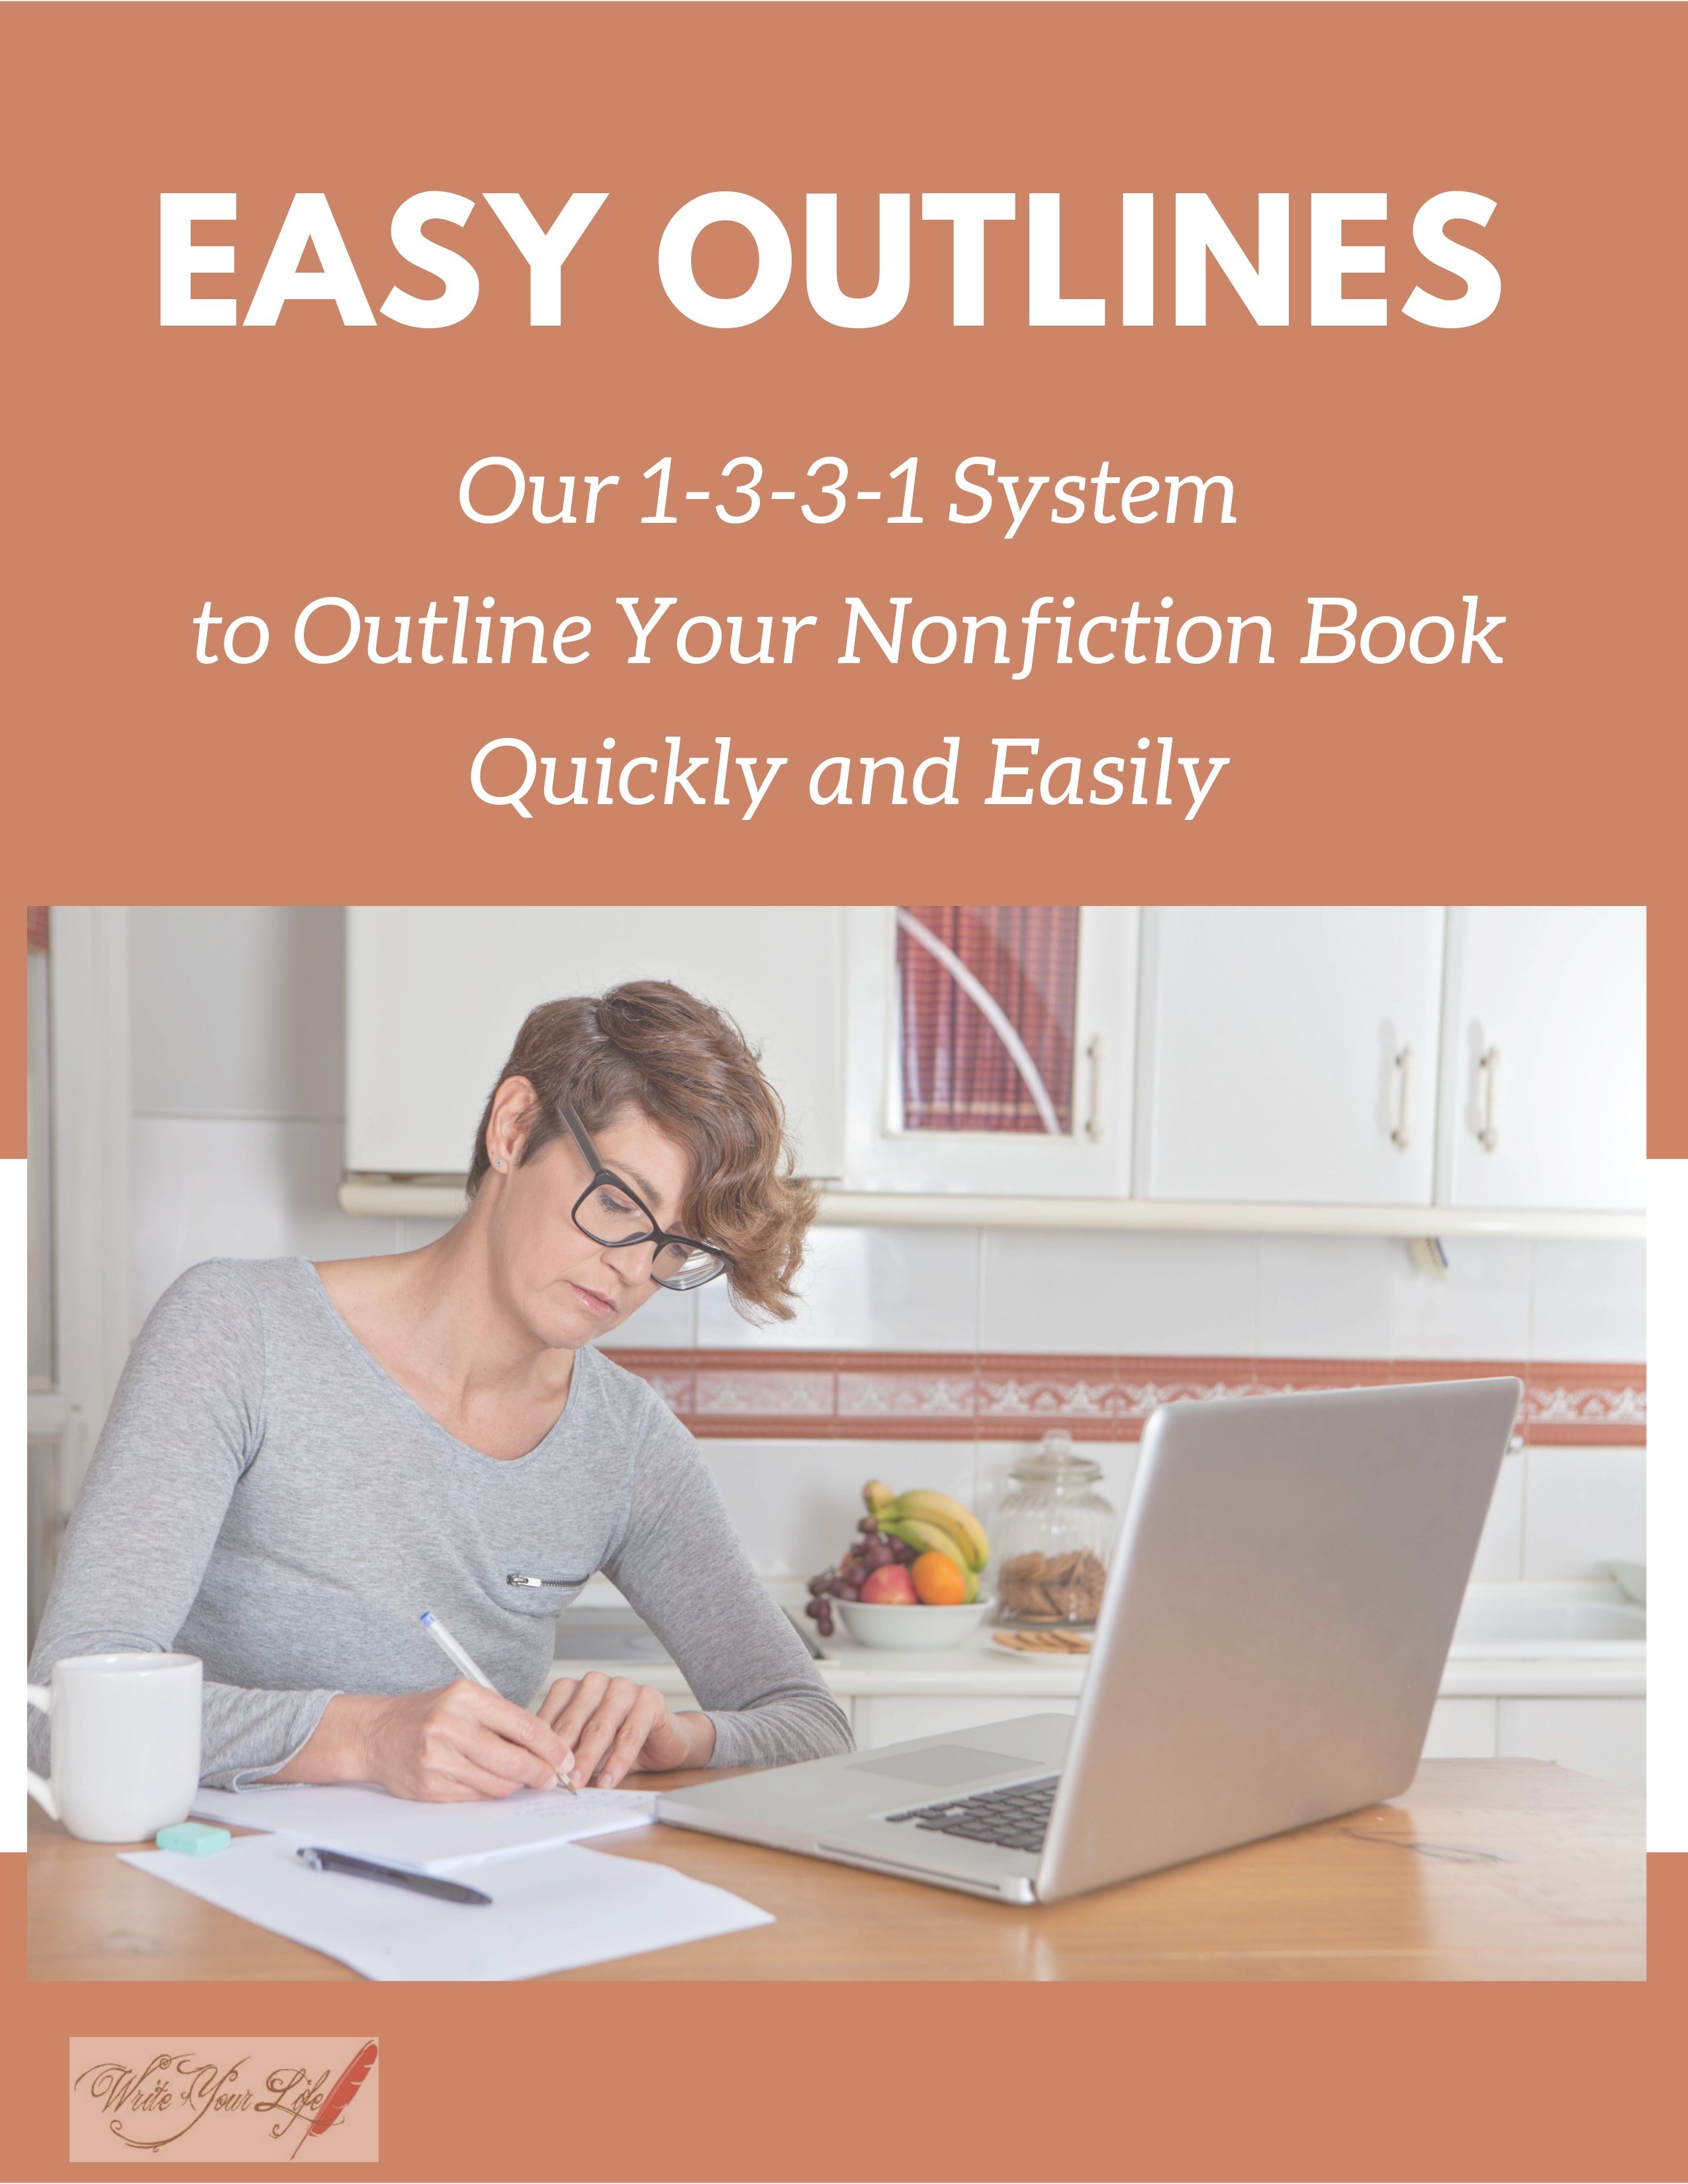 Easy Outlines COVER